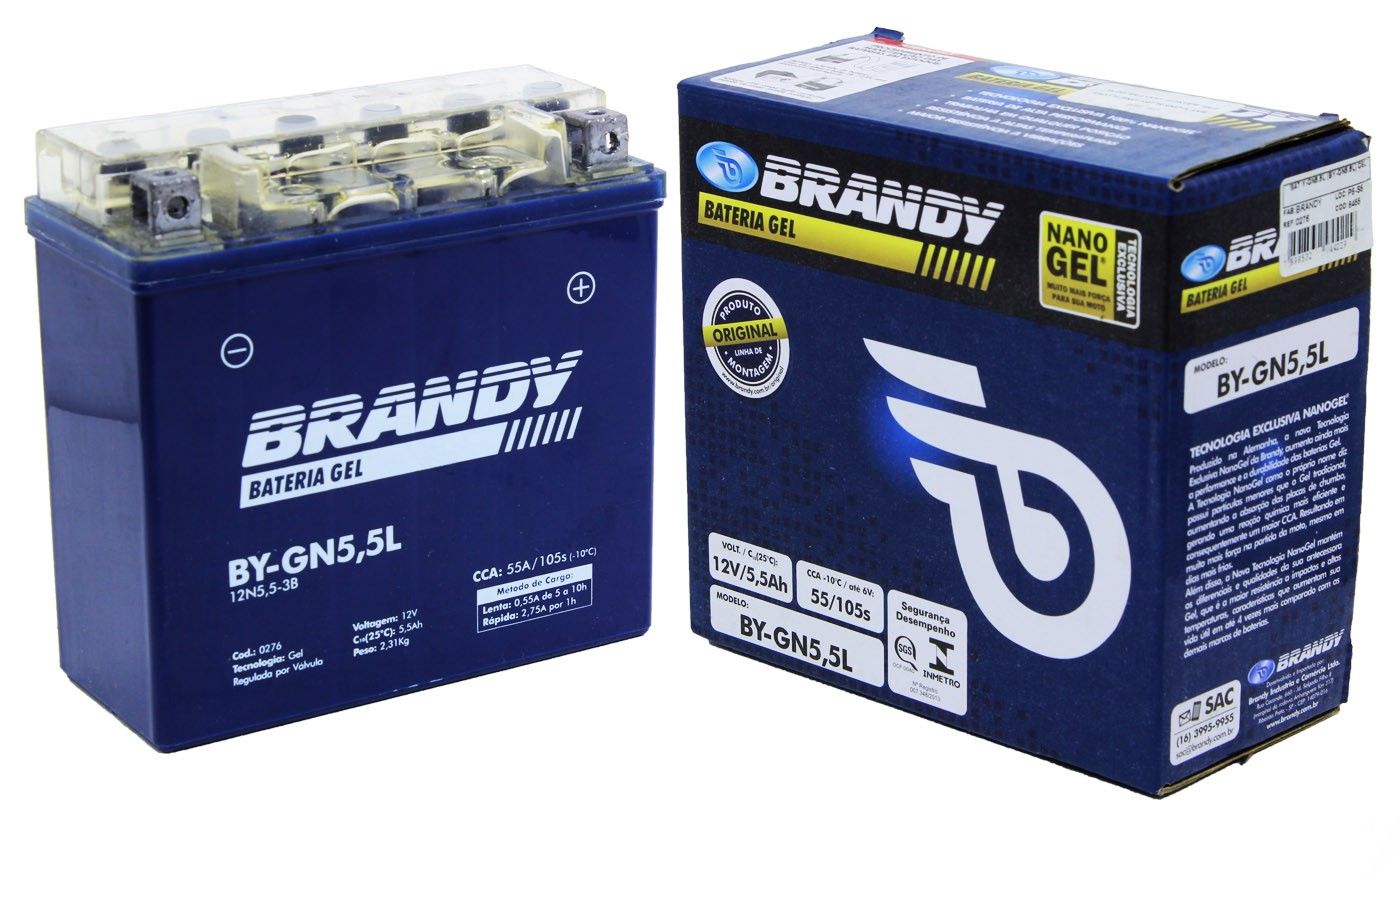 BATERIA GEL BRANDY (BY-N5.5L-B)